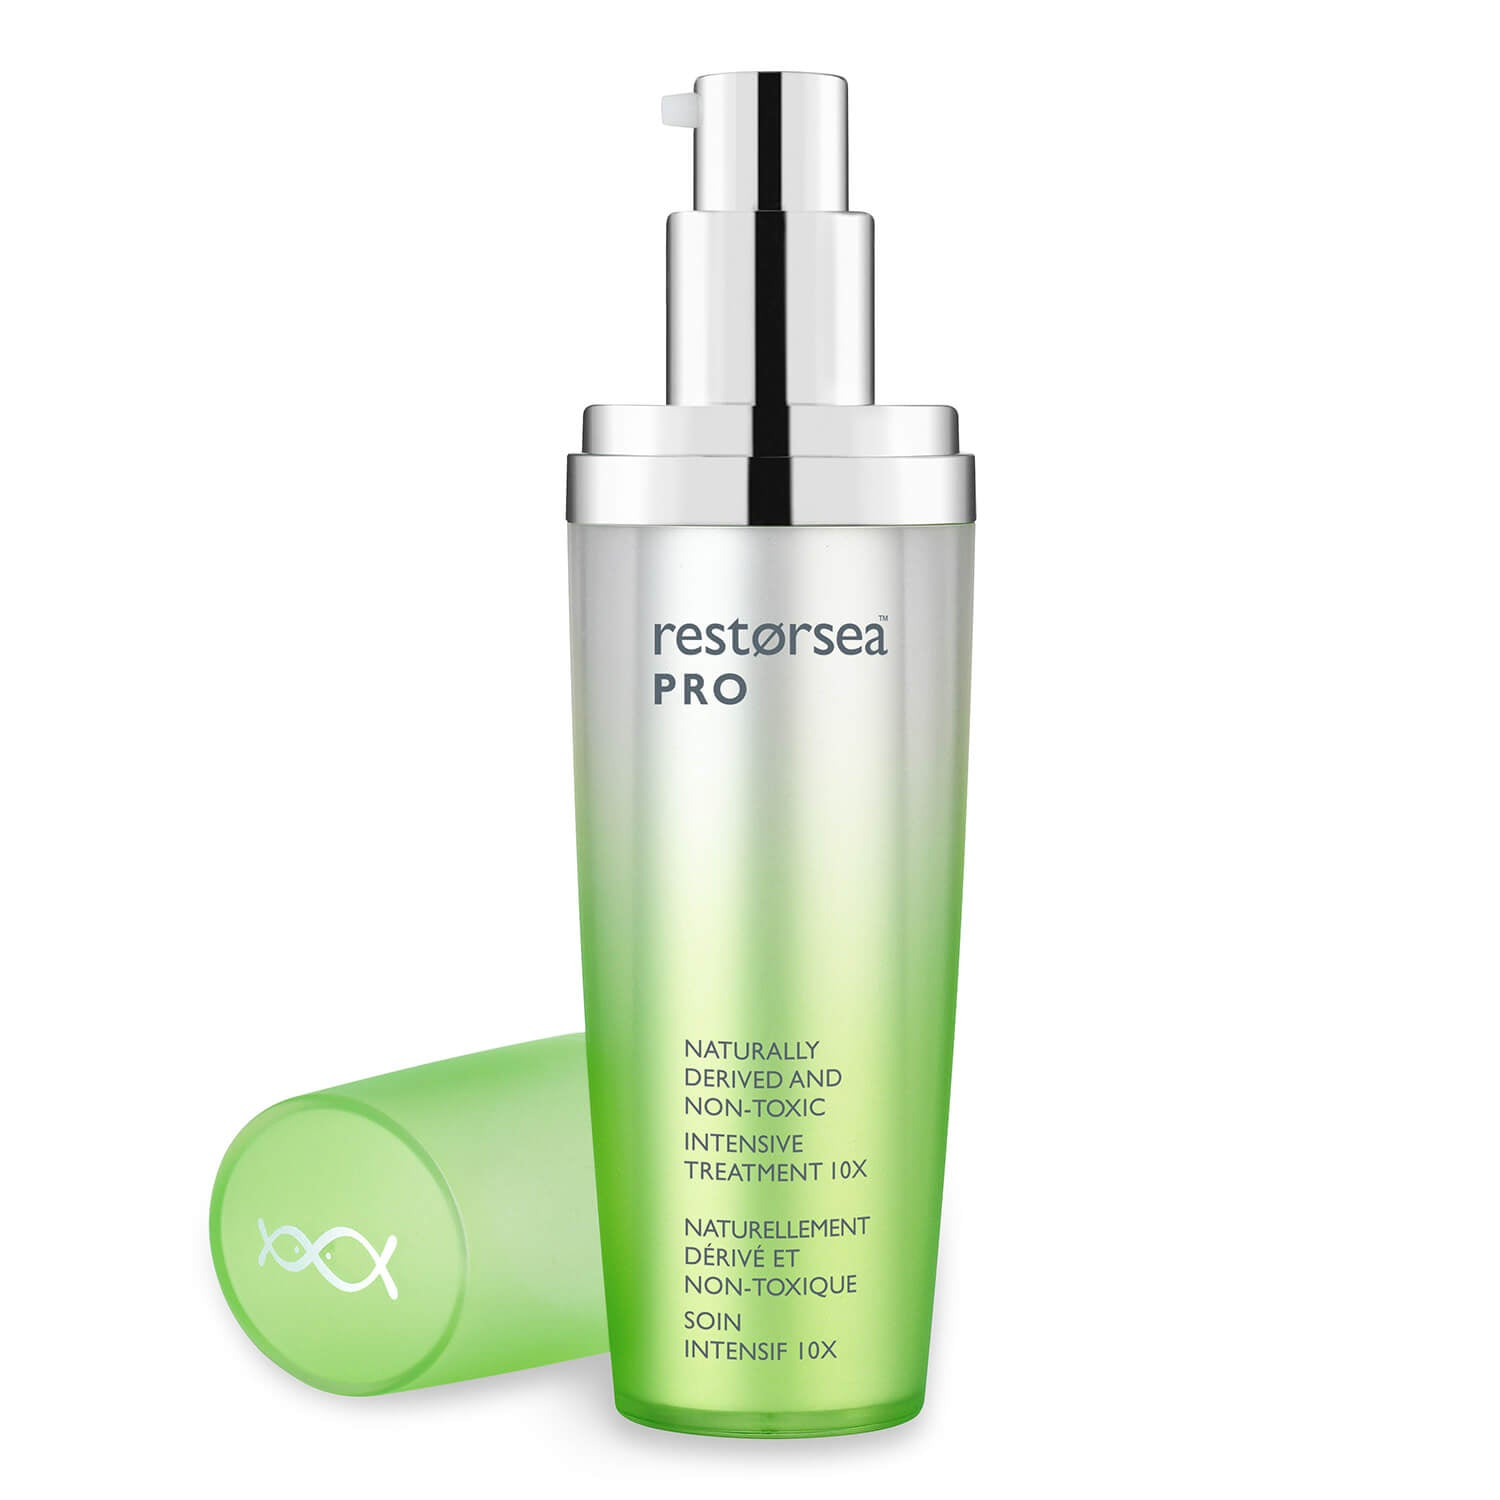 PRO Intensive Treatment 10X Serum